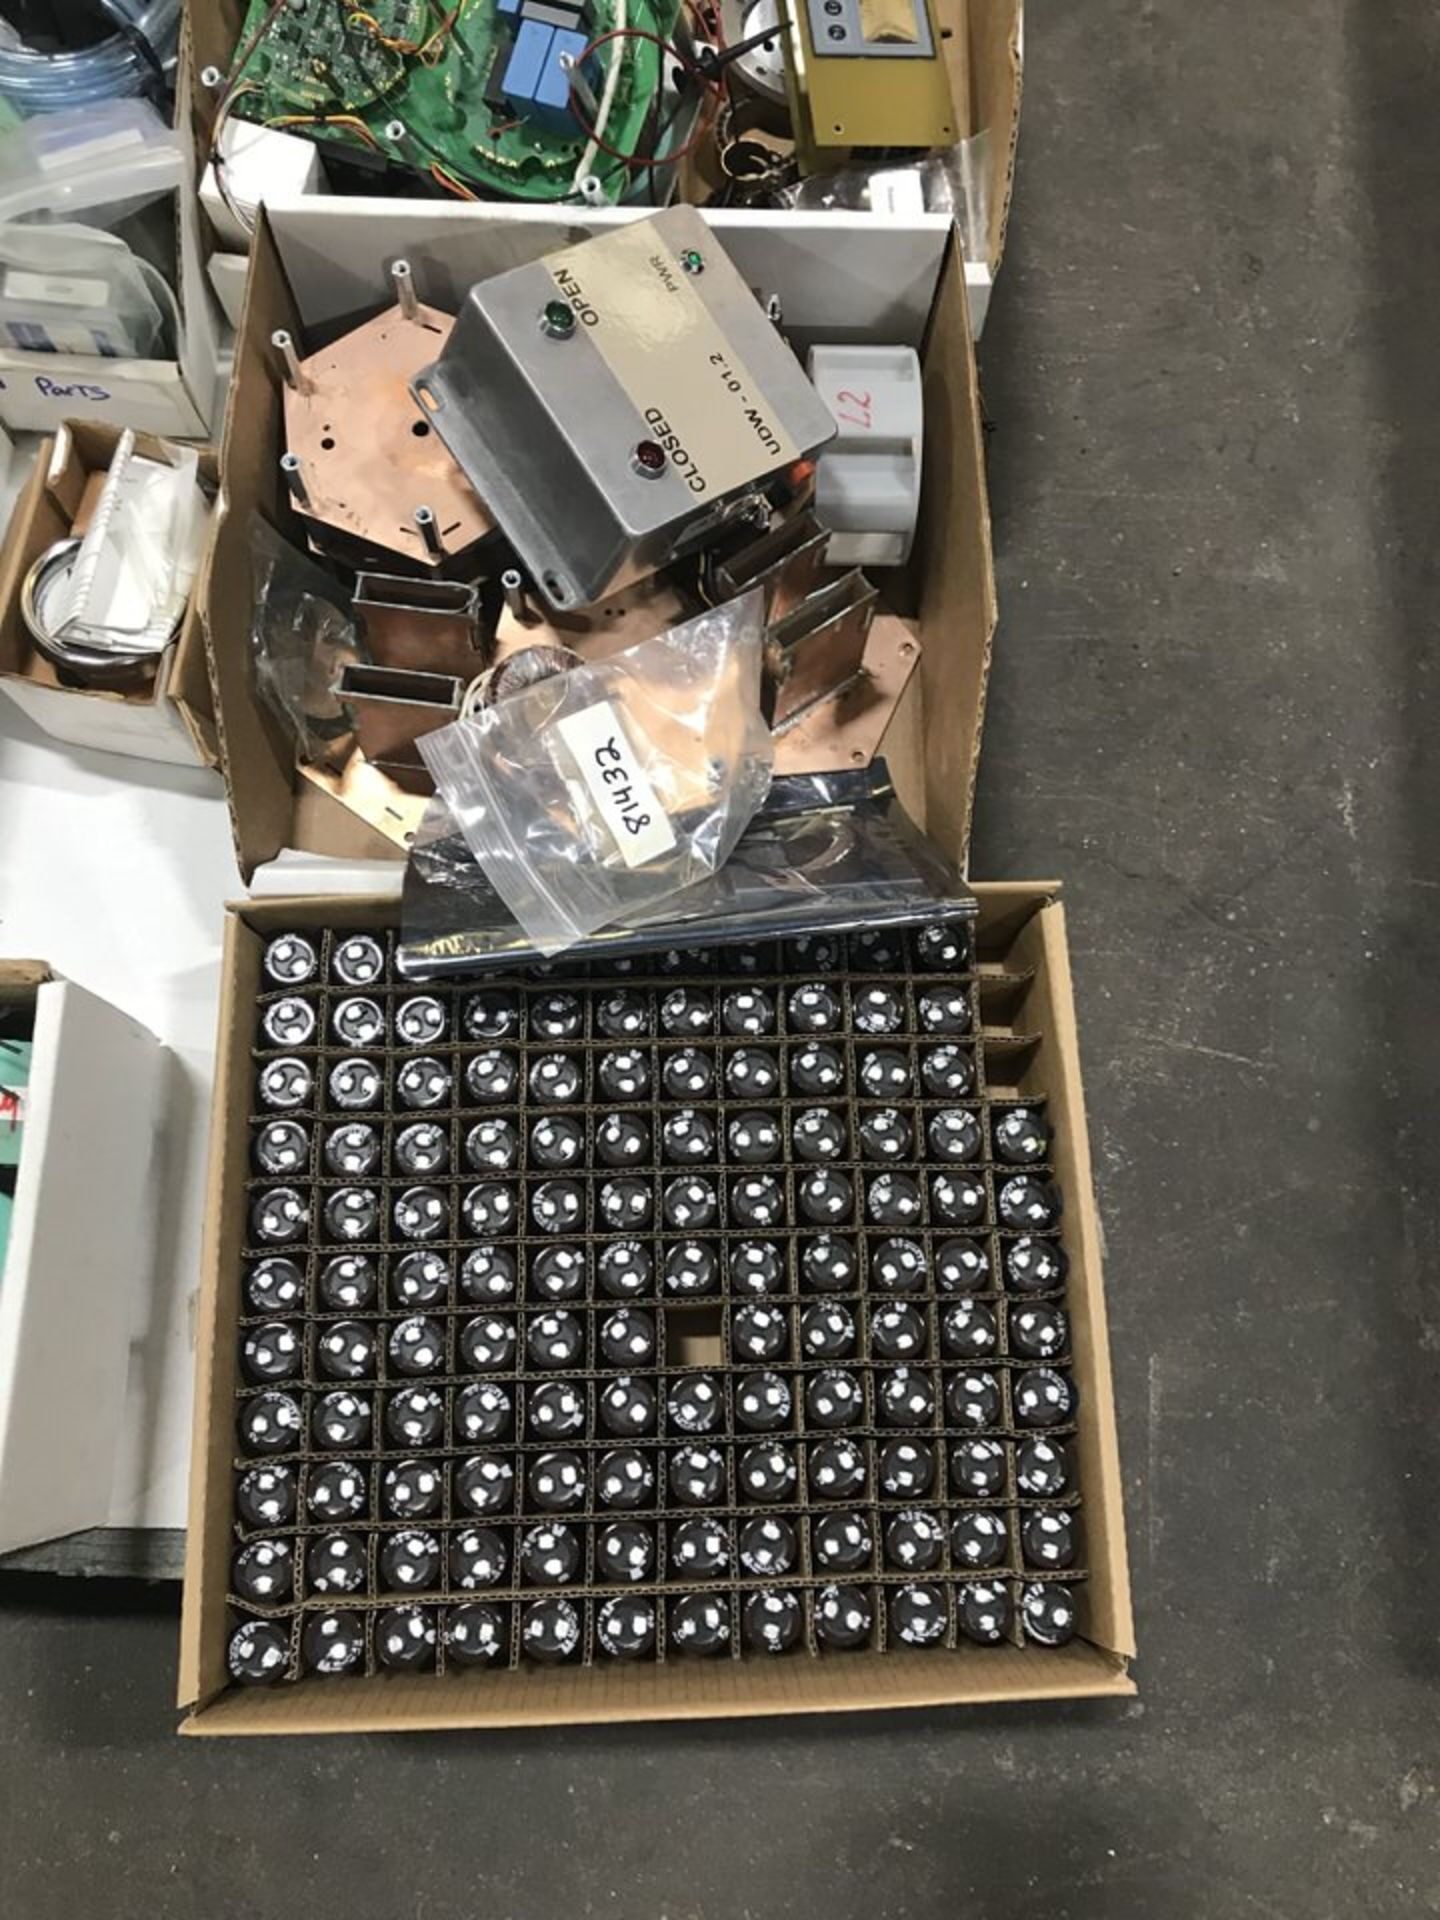 Lot 135B - Electronic Equipment, Capacitors, Inductors, Misc Electronic Components (LOCATION 1: 3421 N